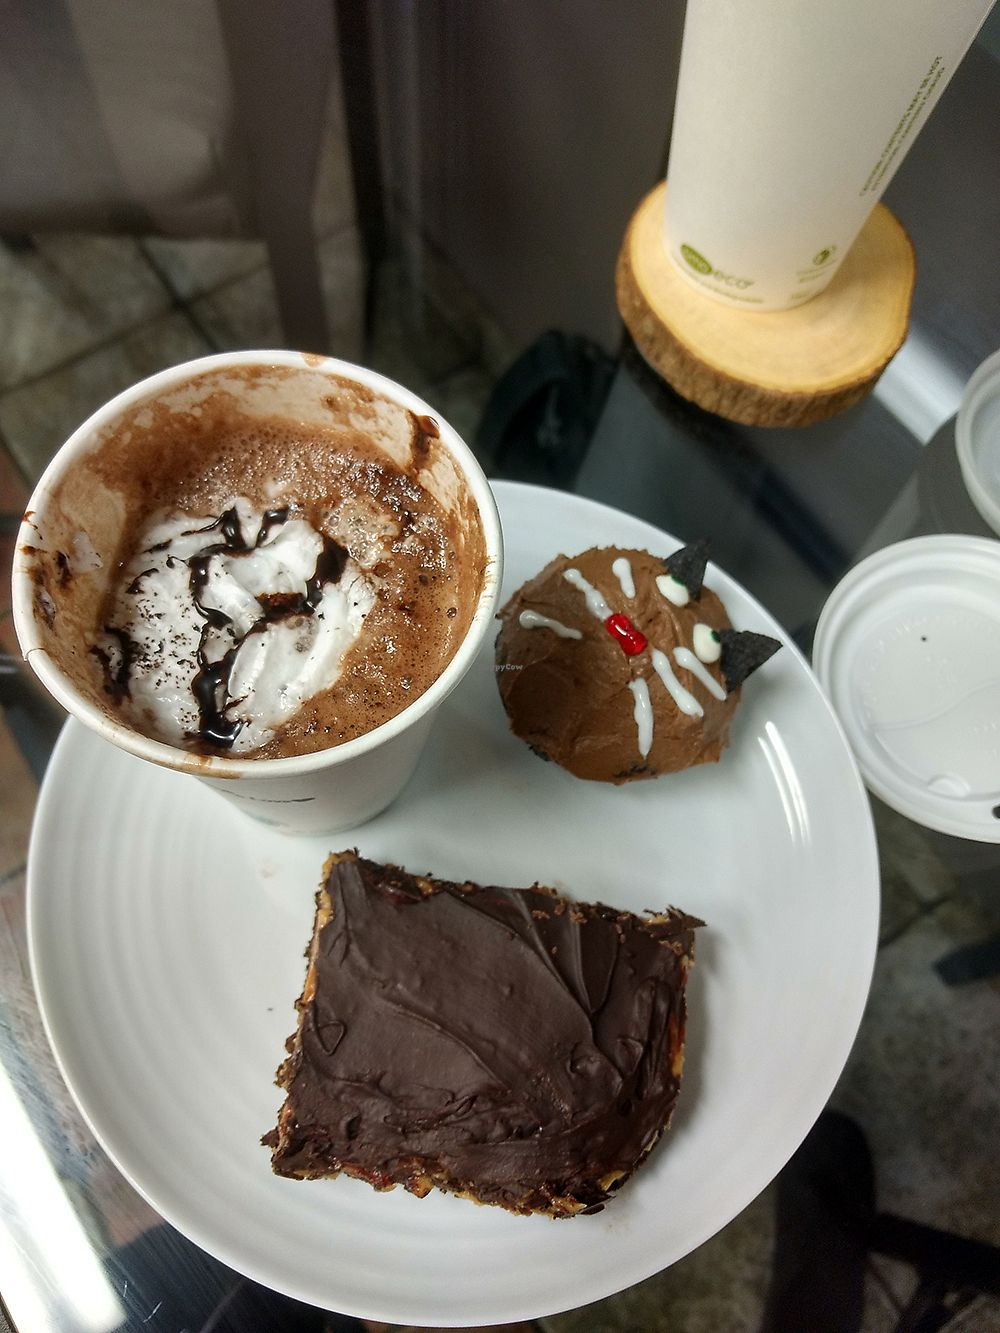 "Photo of VegaBoo Cat Haven  by <a href=""/members/profile/KinaFay"">KinaFay</a> <br/>Hot chocolate, peanut butter nanaimo bar and muffic. Vegan <br/> November 7, 2017  - <a href='/contact/abuse/image/104369/322885'>Report</a>"